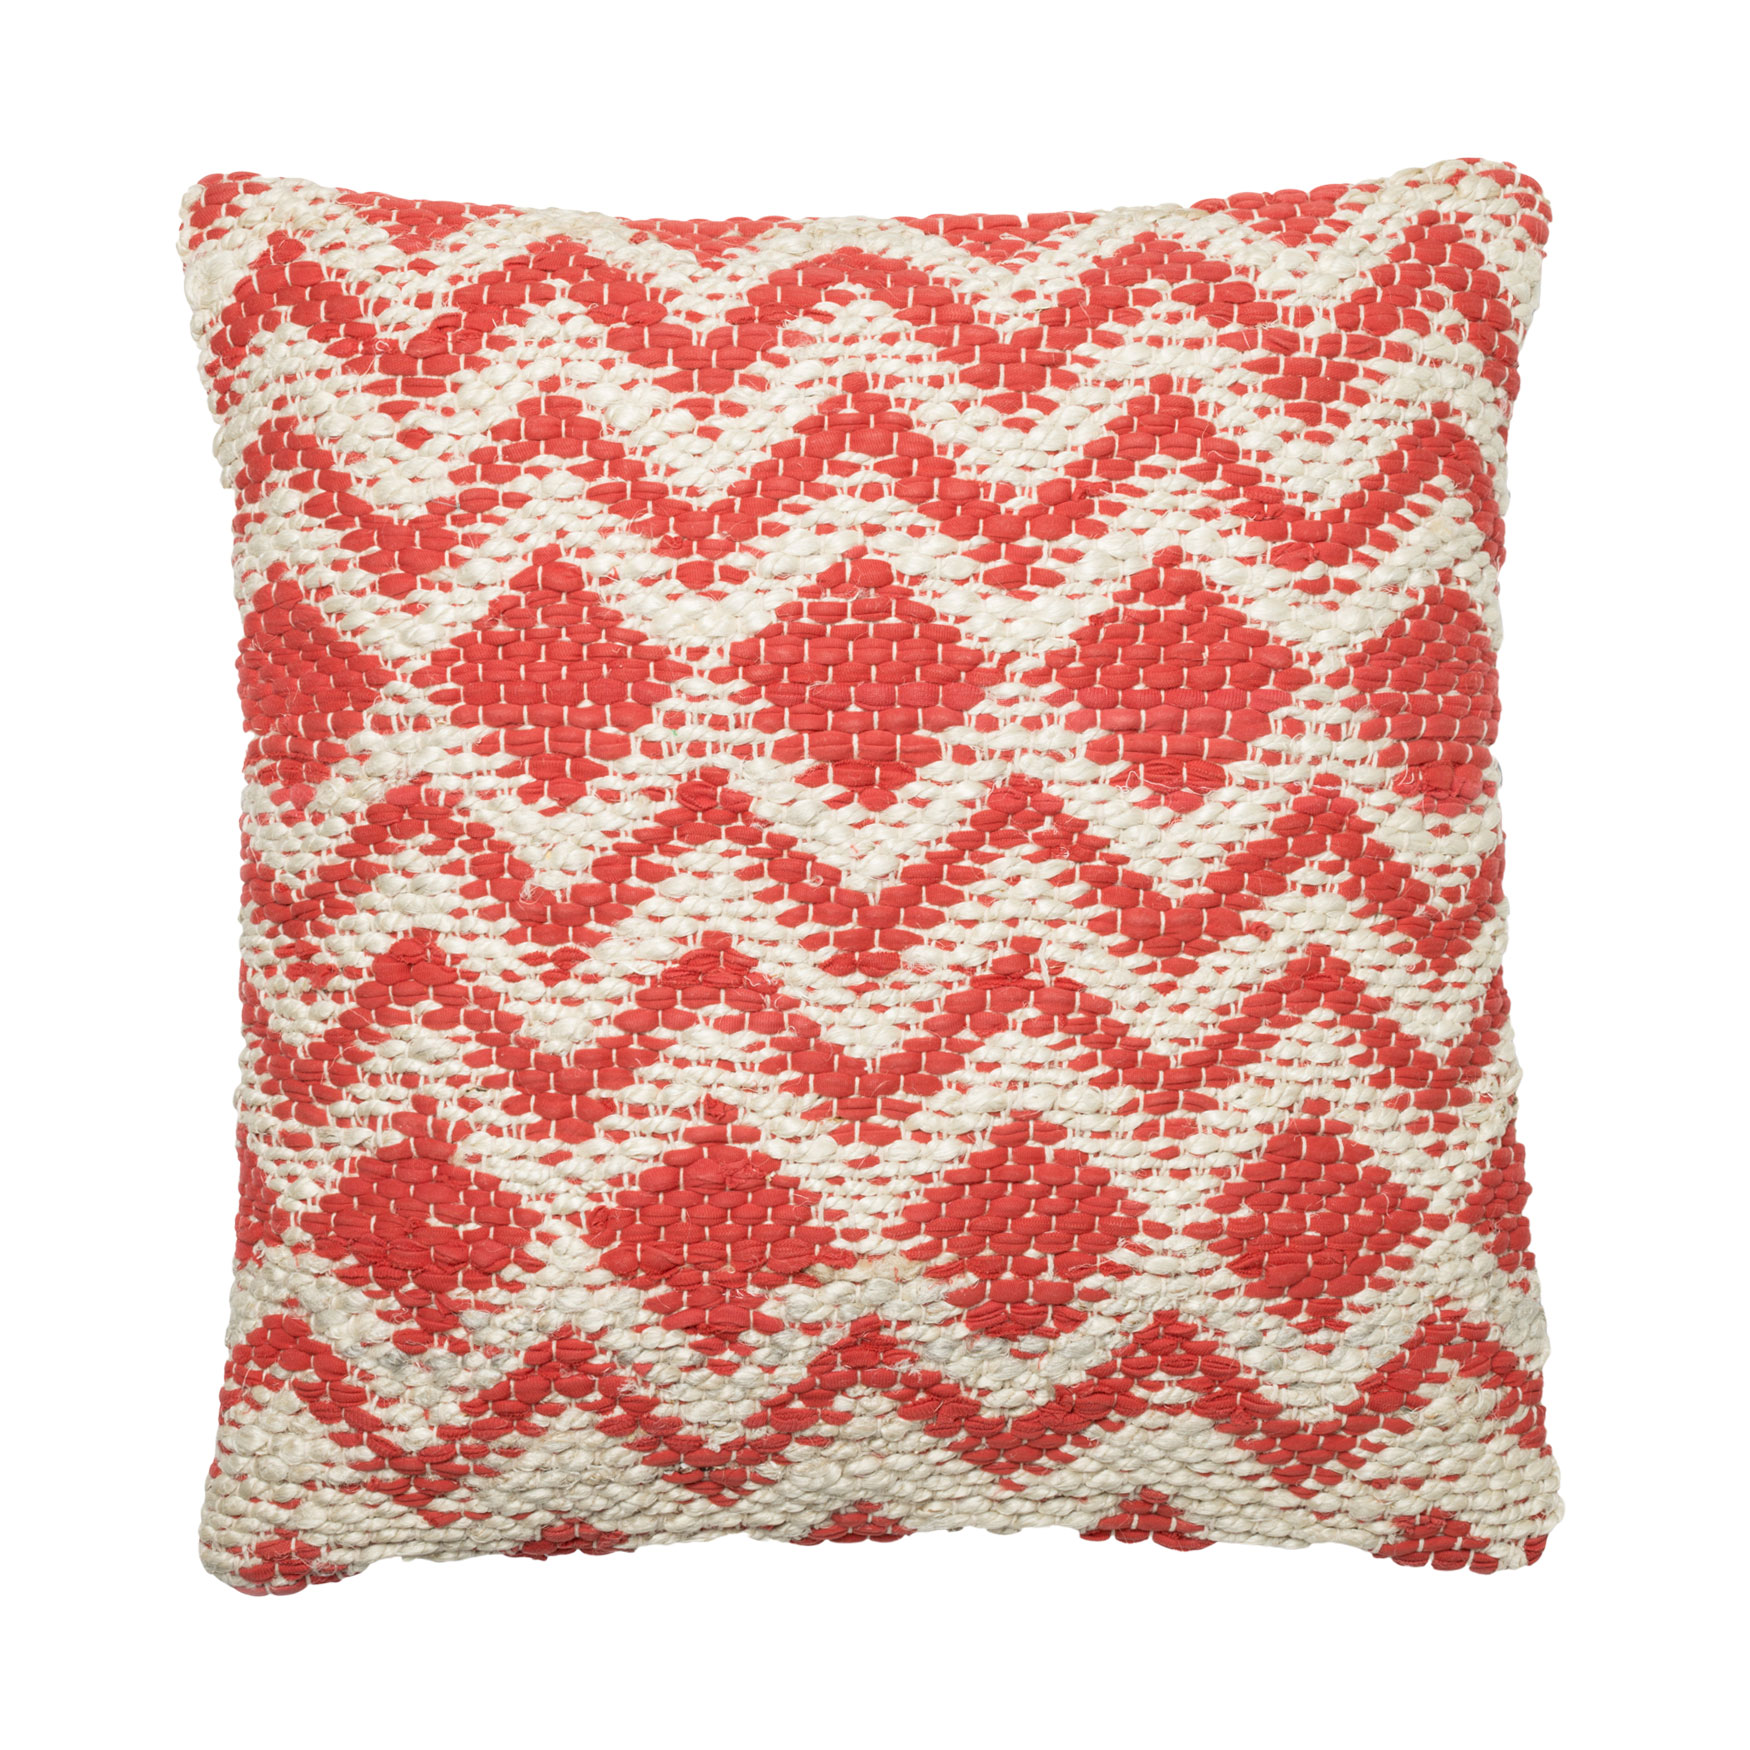 Woven Chevron And Diamond Coral Decorative Pillow, CORAL GREY